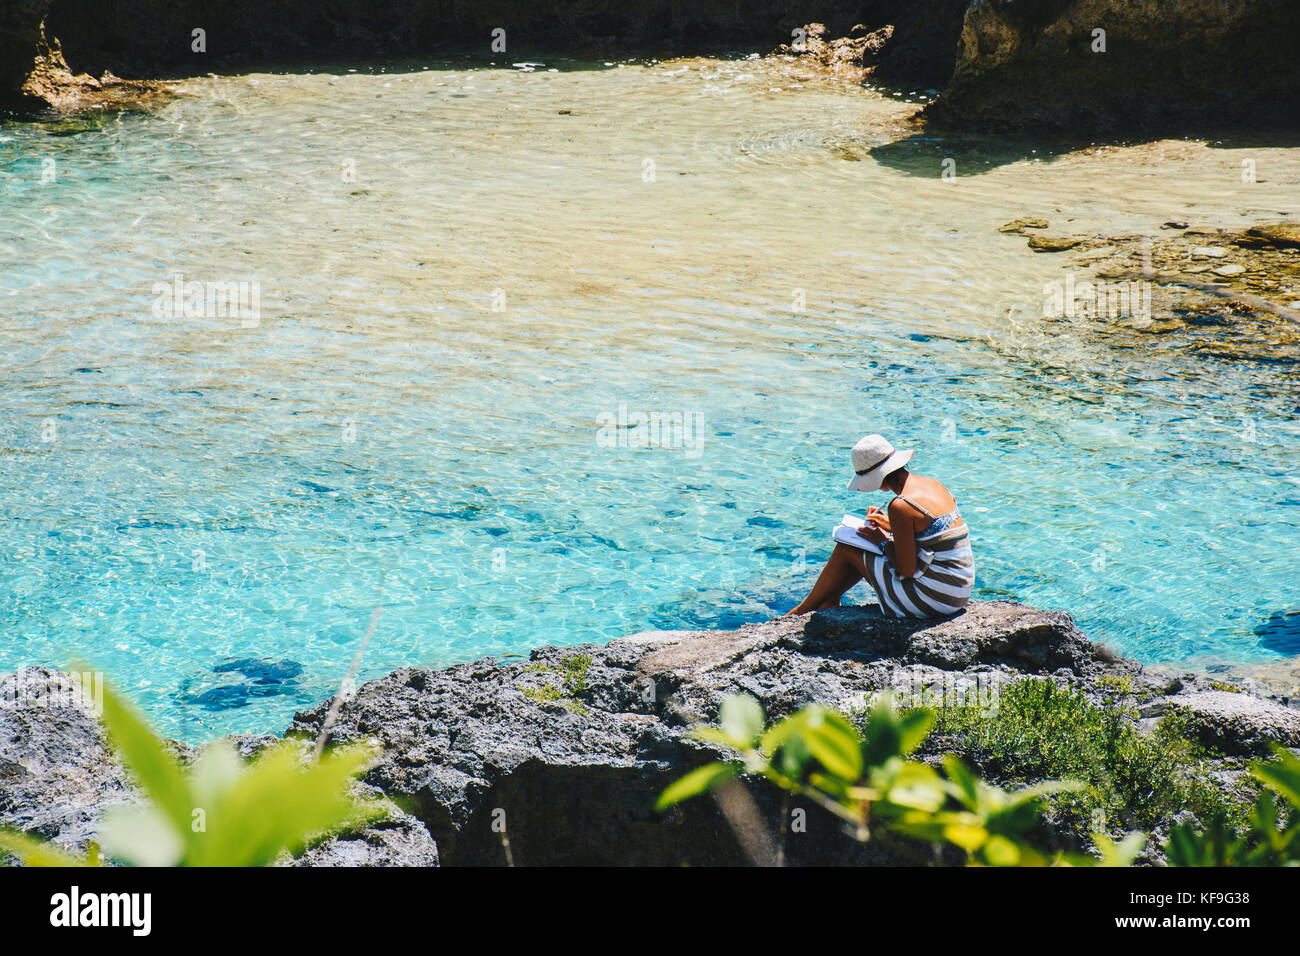 Ocean Pools Stock Photos & Ocean Pools Stock Images - Alamy